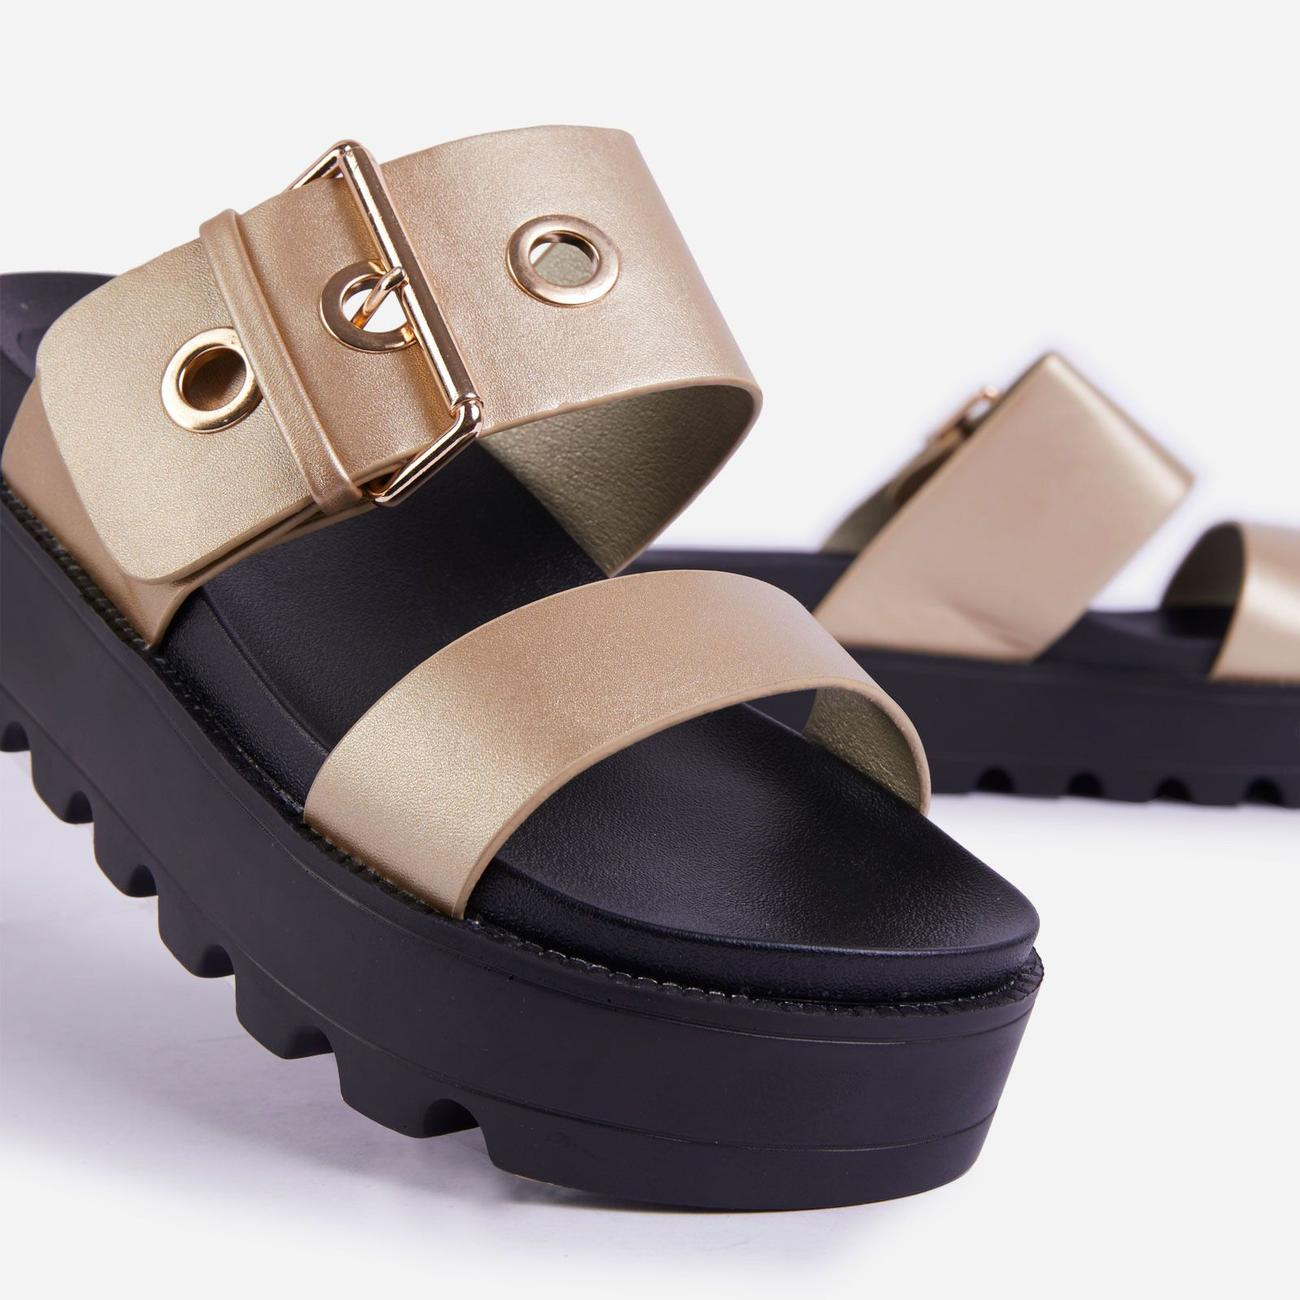 Aliki Chunky Sole Buckle Detail Sandal In Gold Faux Leather Image 5